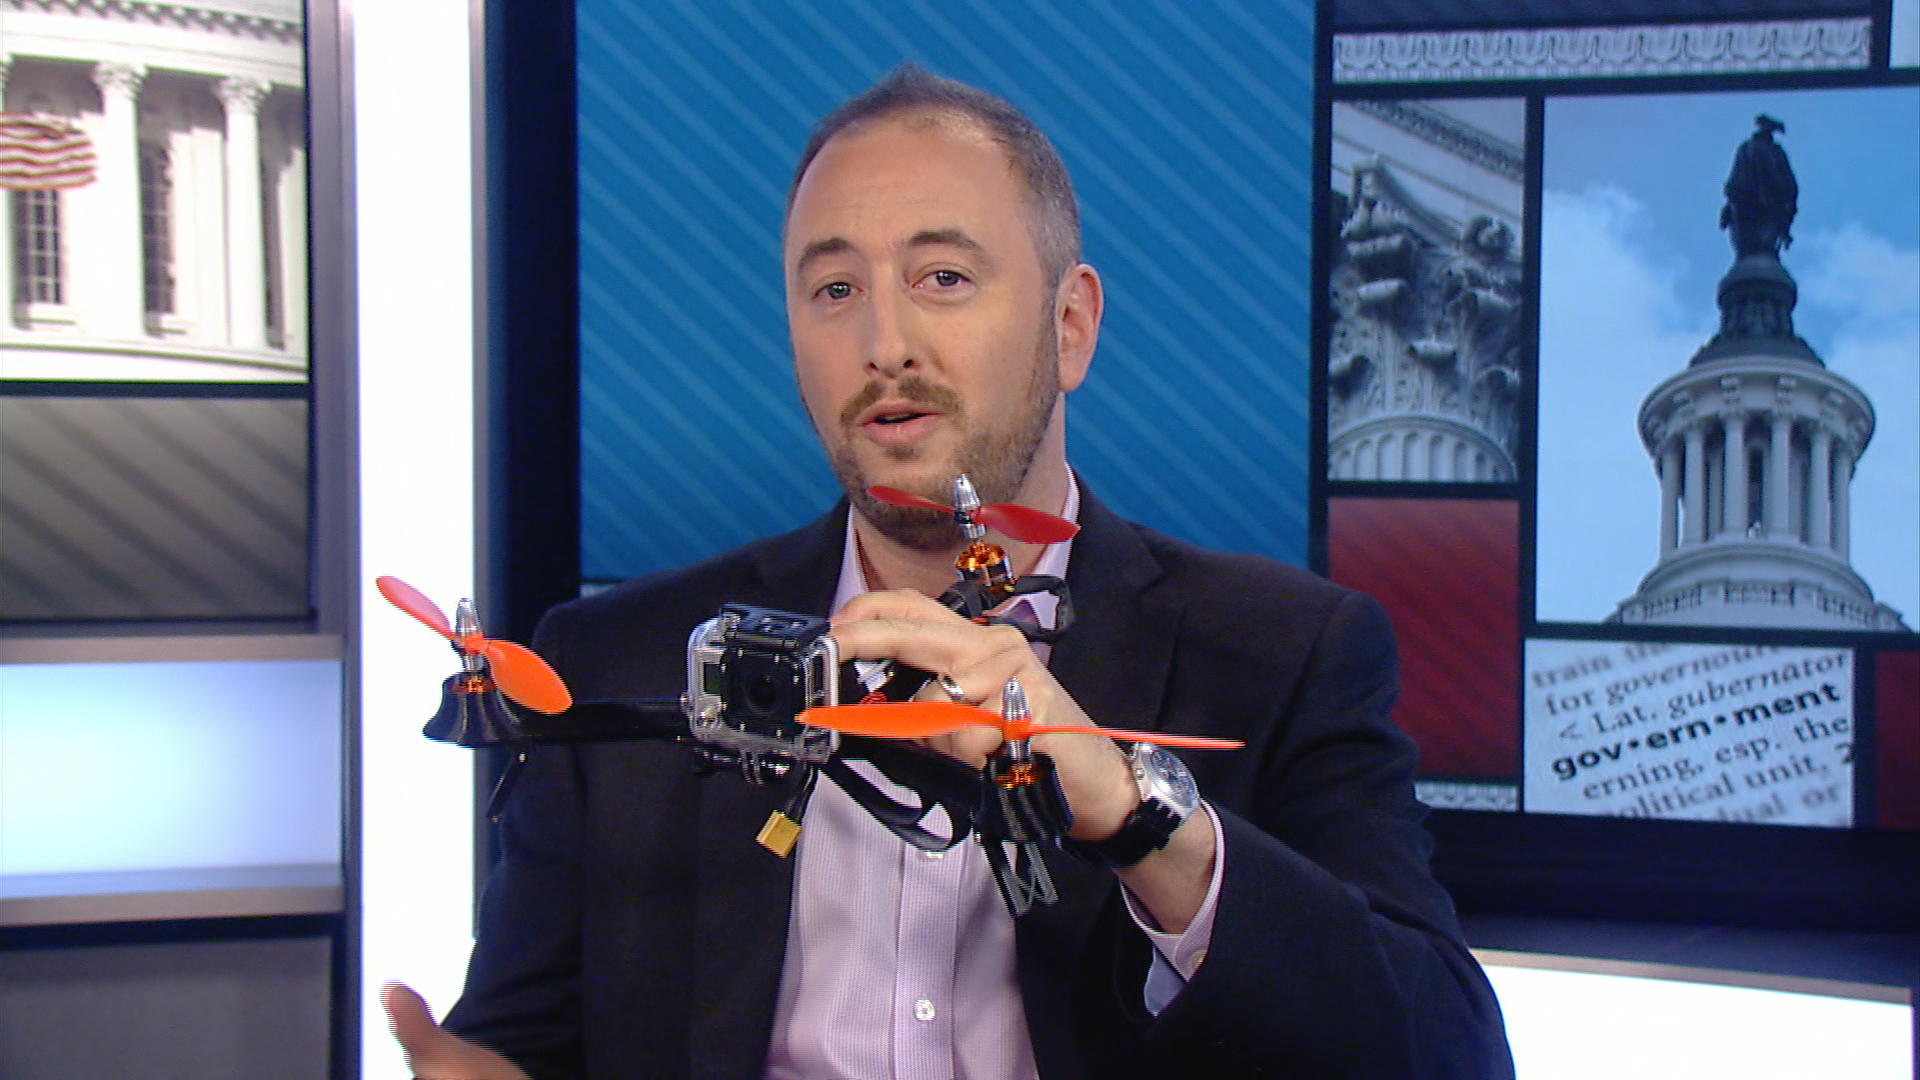 These Folks Can Build Drones That Might One-Up Amazon